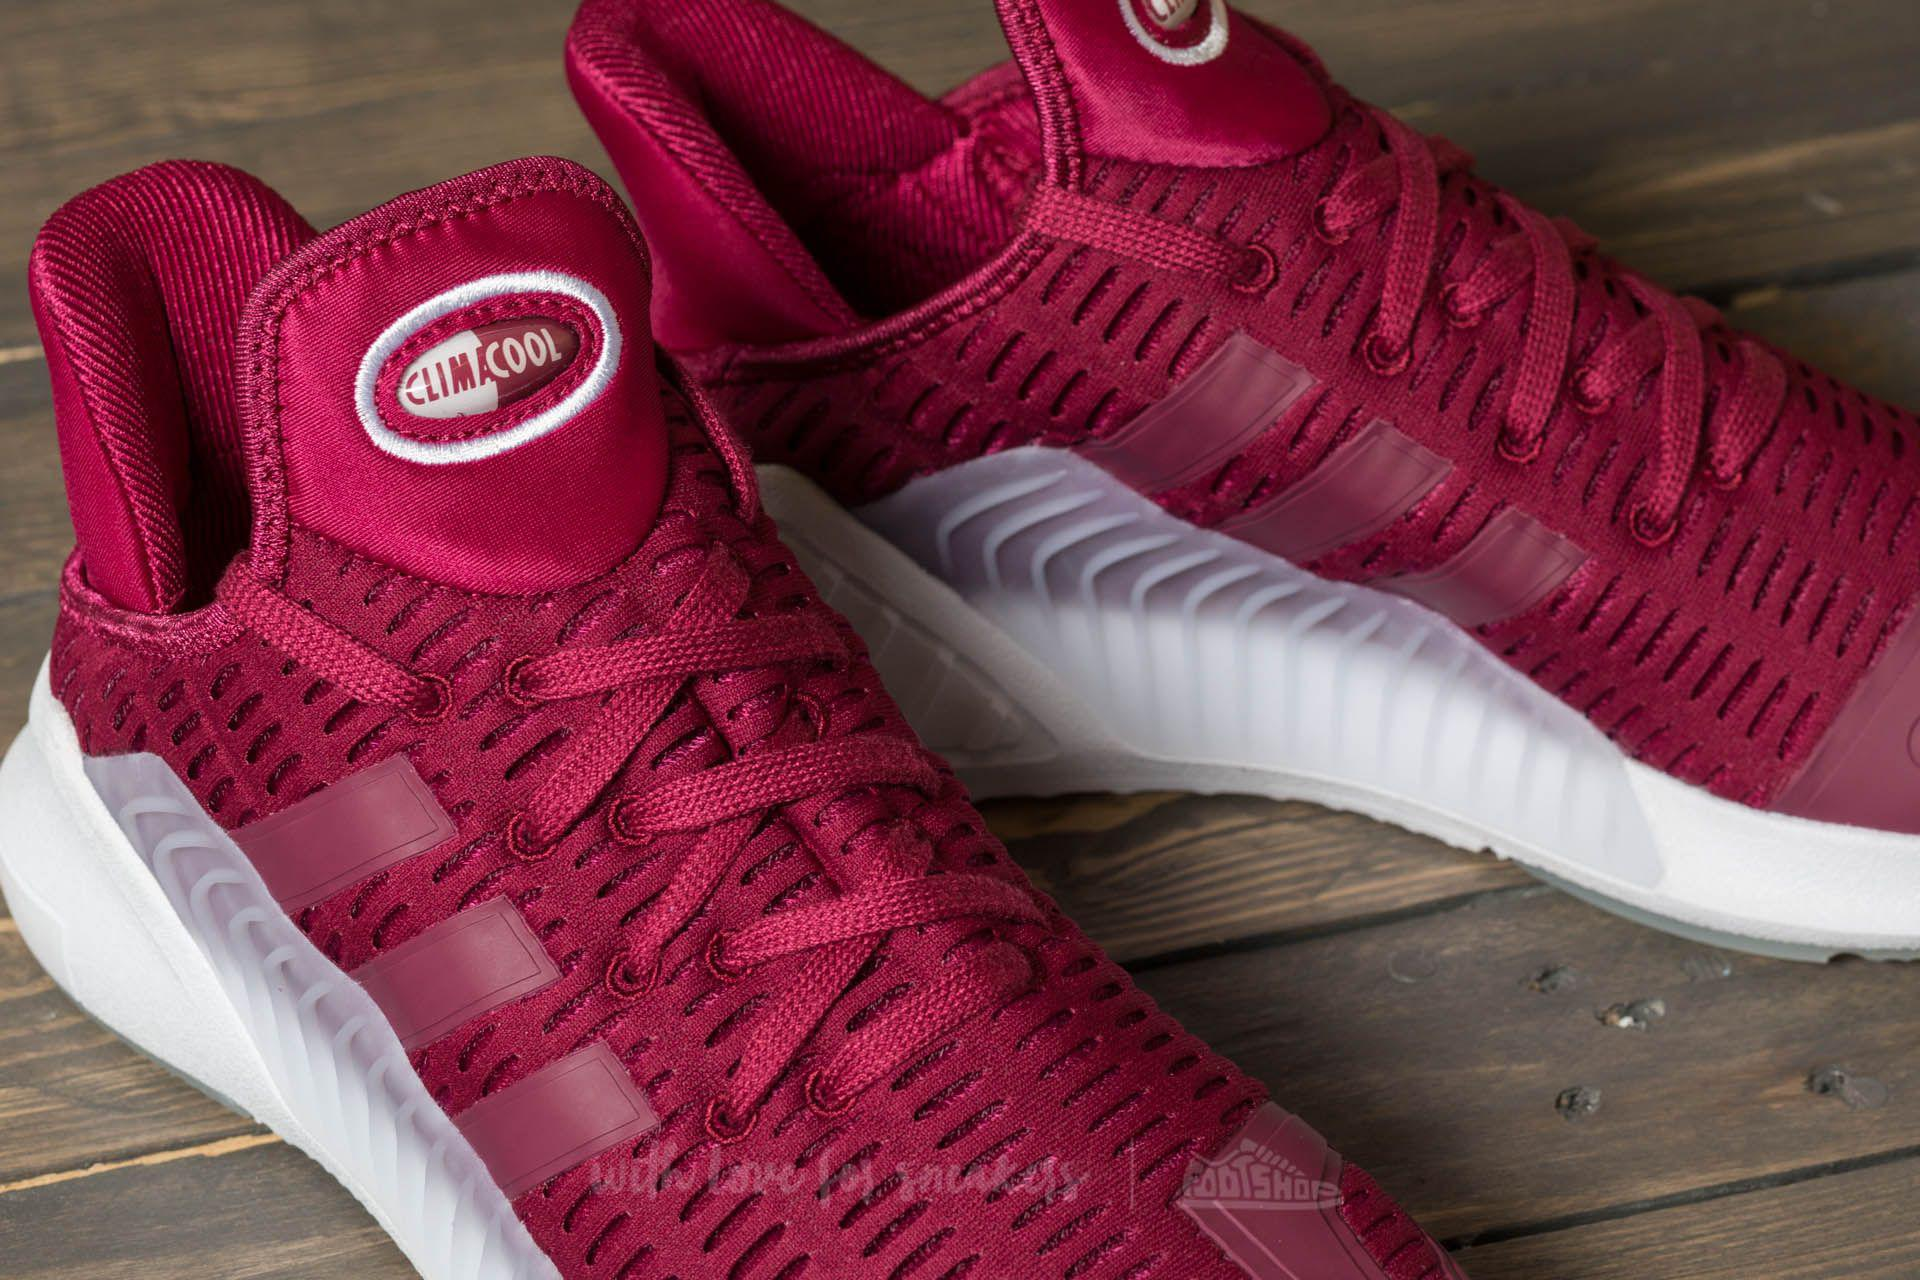 the latest 8d292 16106 ... Lyst - Adidas Originals Adidas Climacool 02 17 Mystery Ruby ...